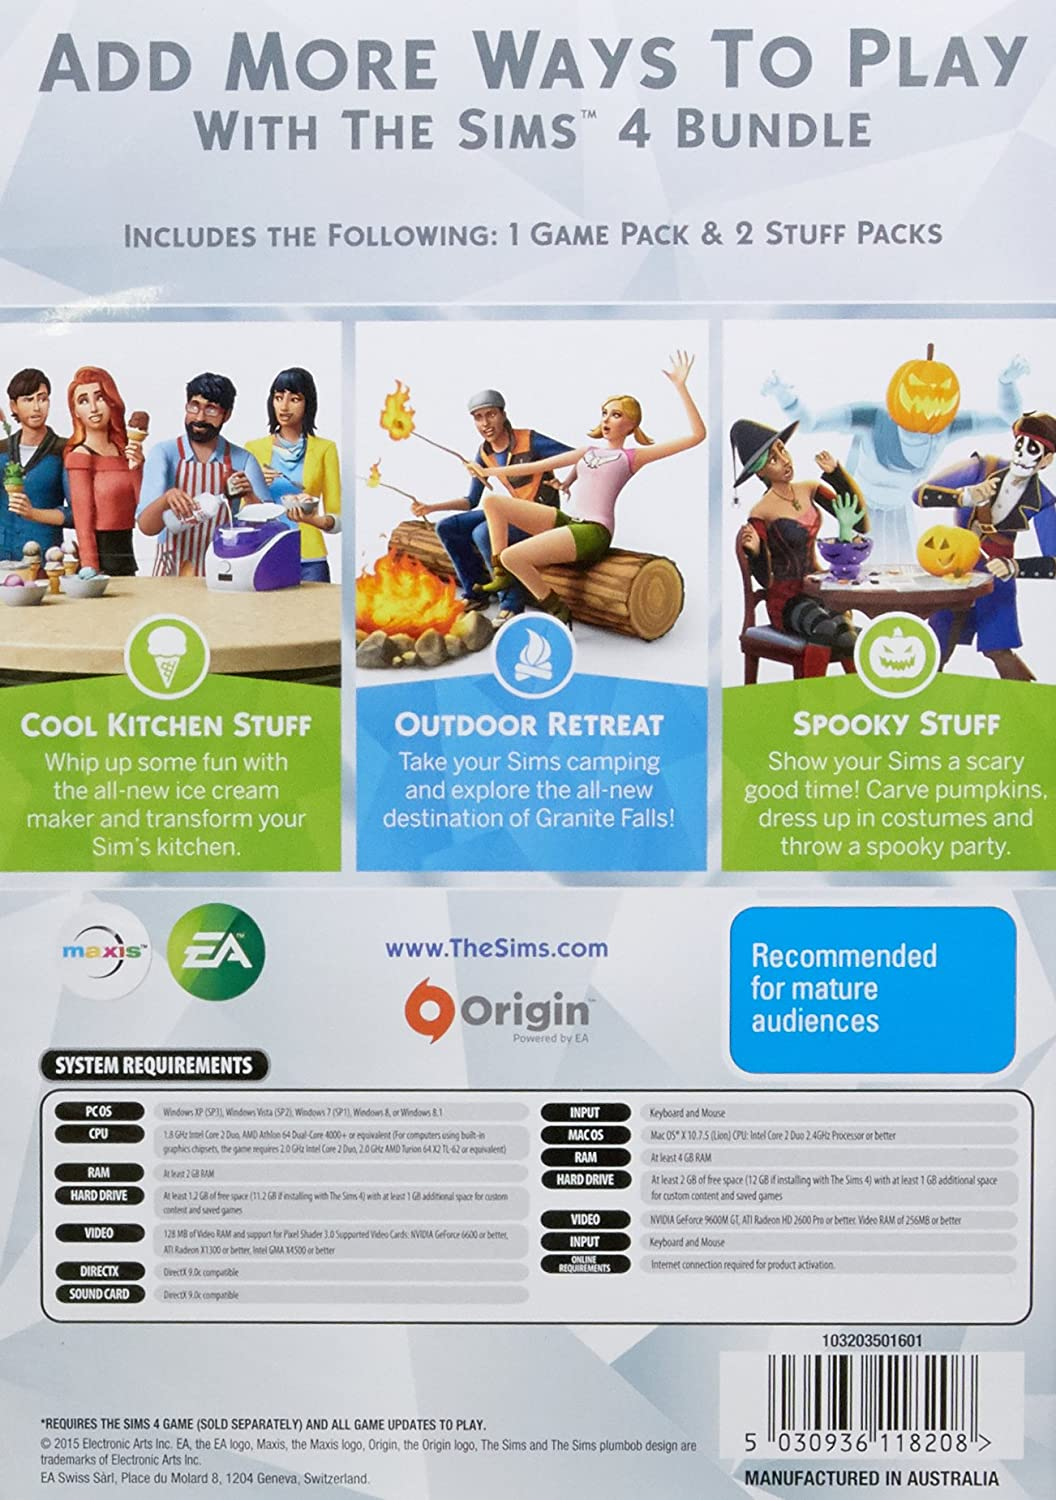 THE SIMS 4 BUNDLE PACK (Outdoor Retreat, Cool Kitchen Stuff, Spooky